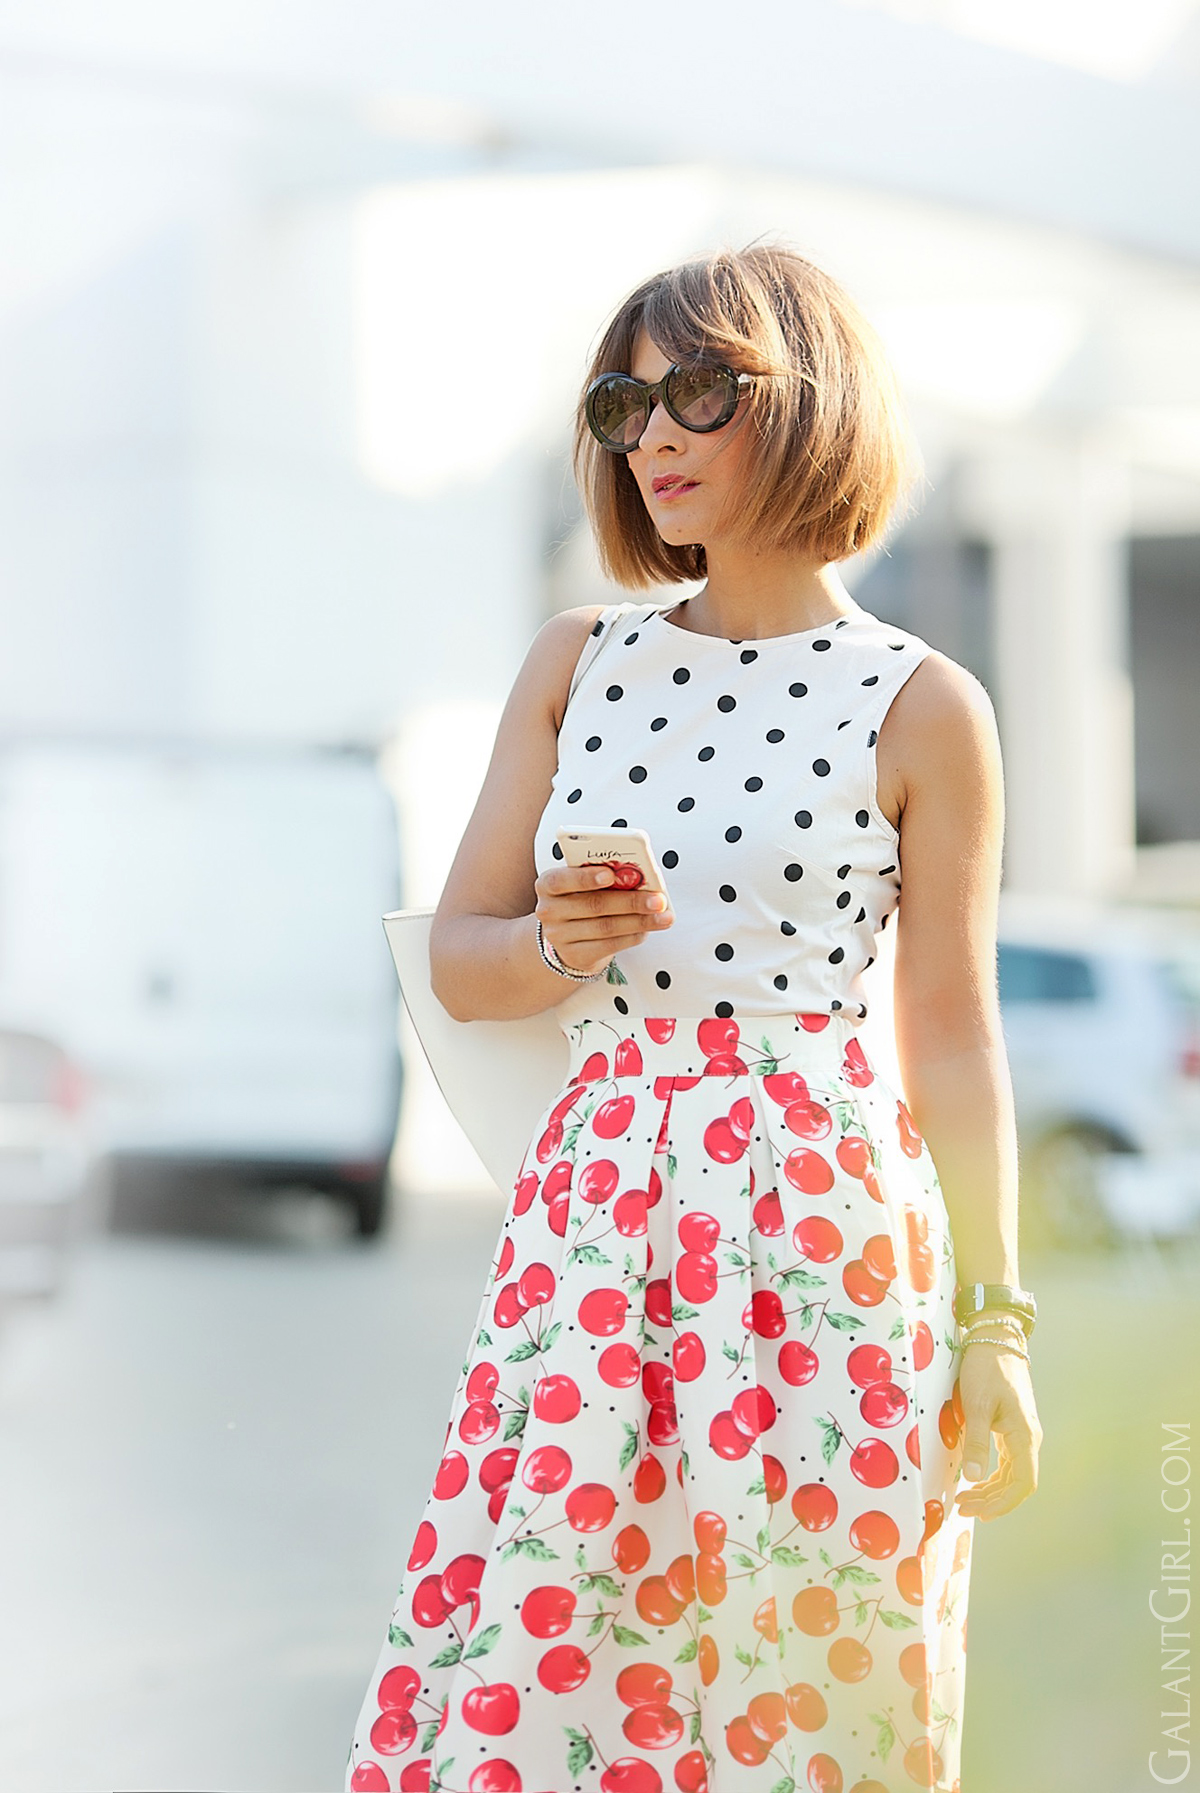 cherry-print-skirt-choies-outfit-galant-girl